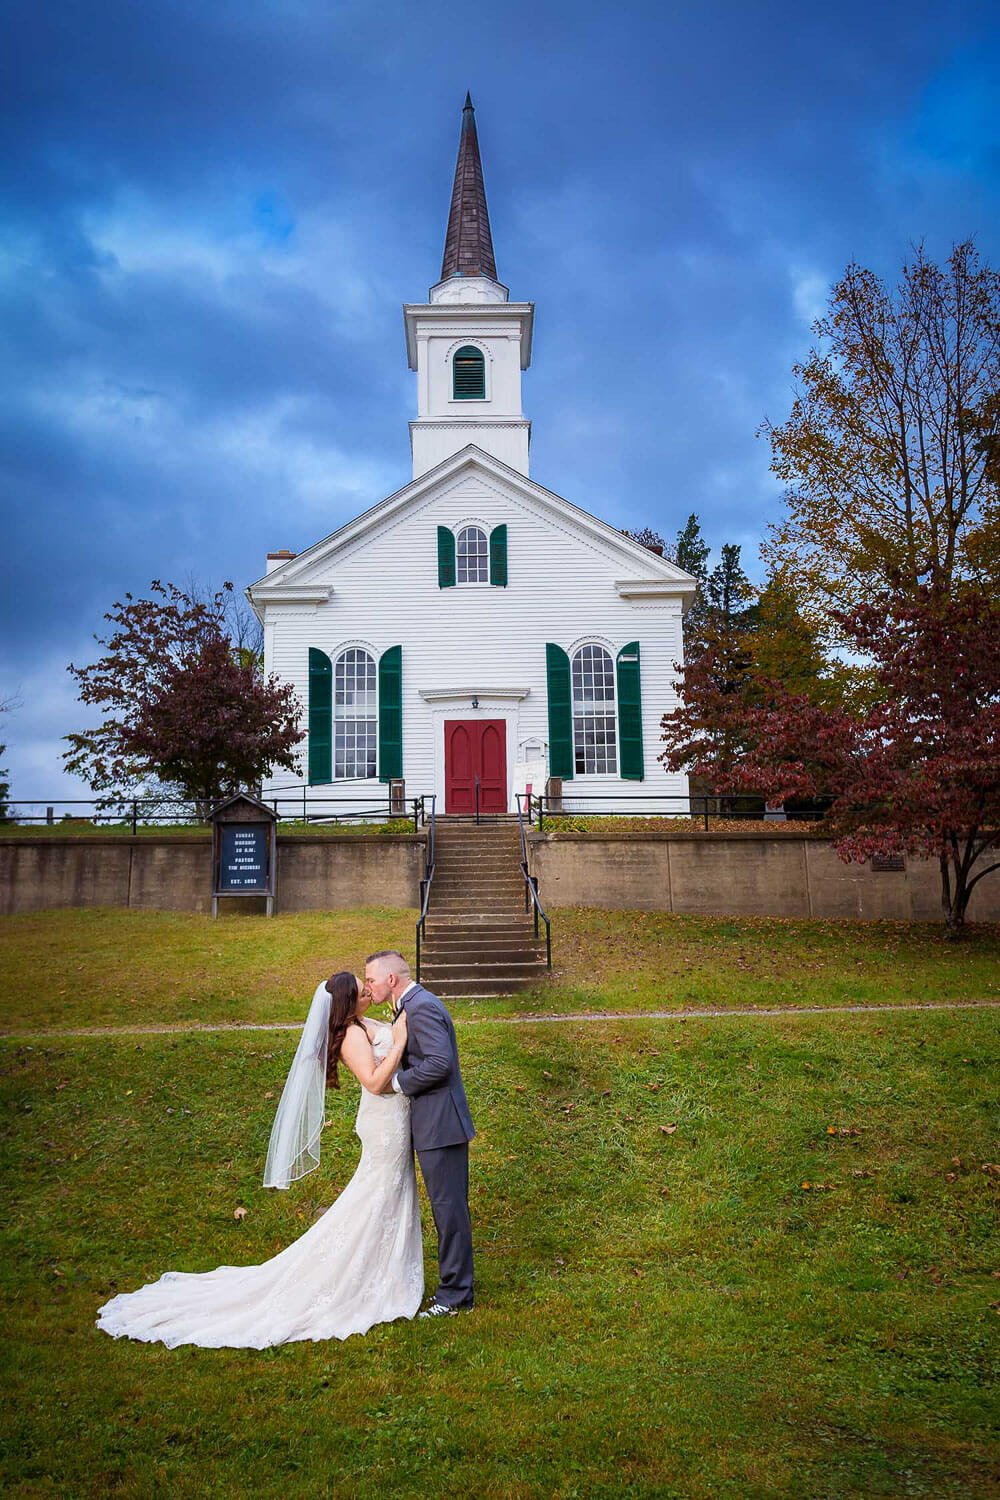 Bride and groom in front of old Church at Waterloo Village Wedding Photo New Jersey Wedding Photographer